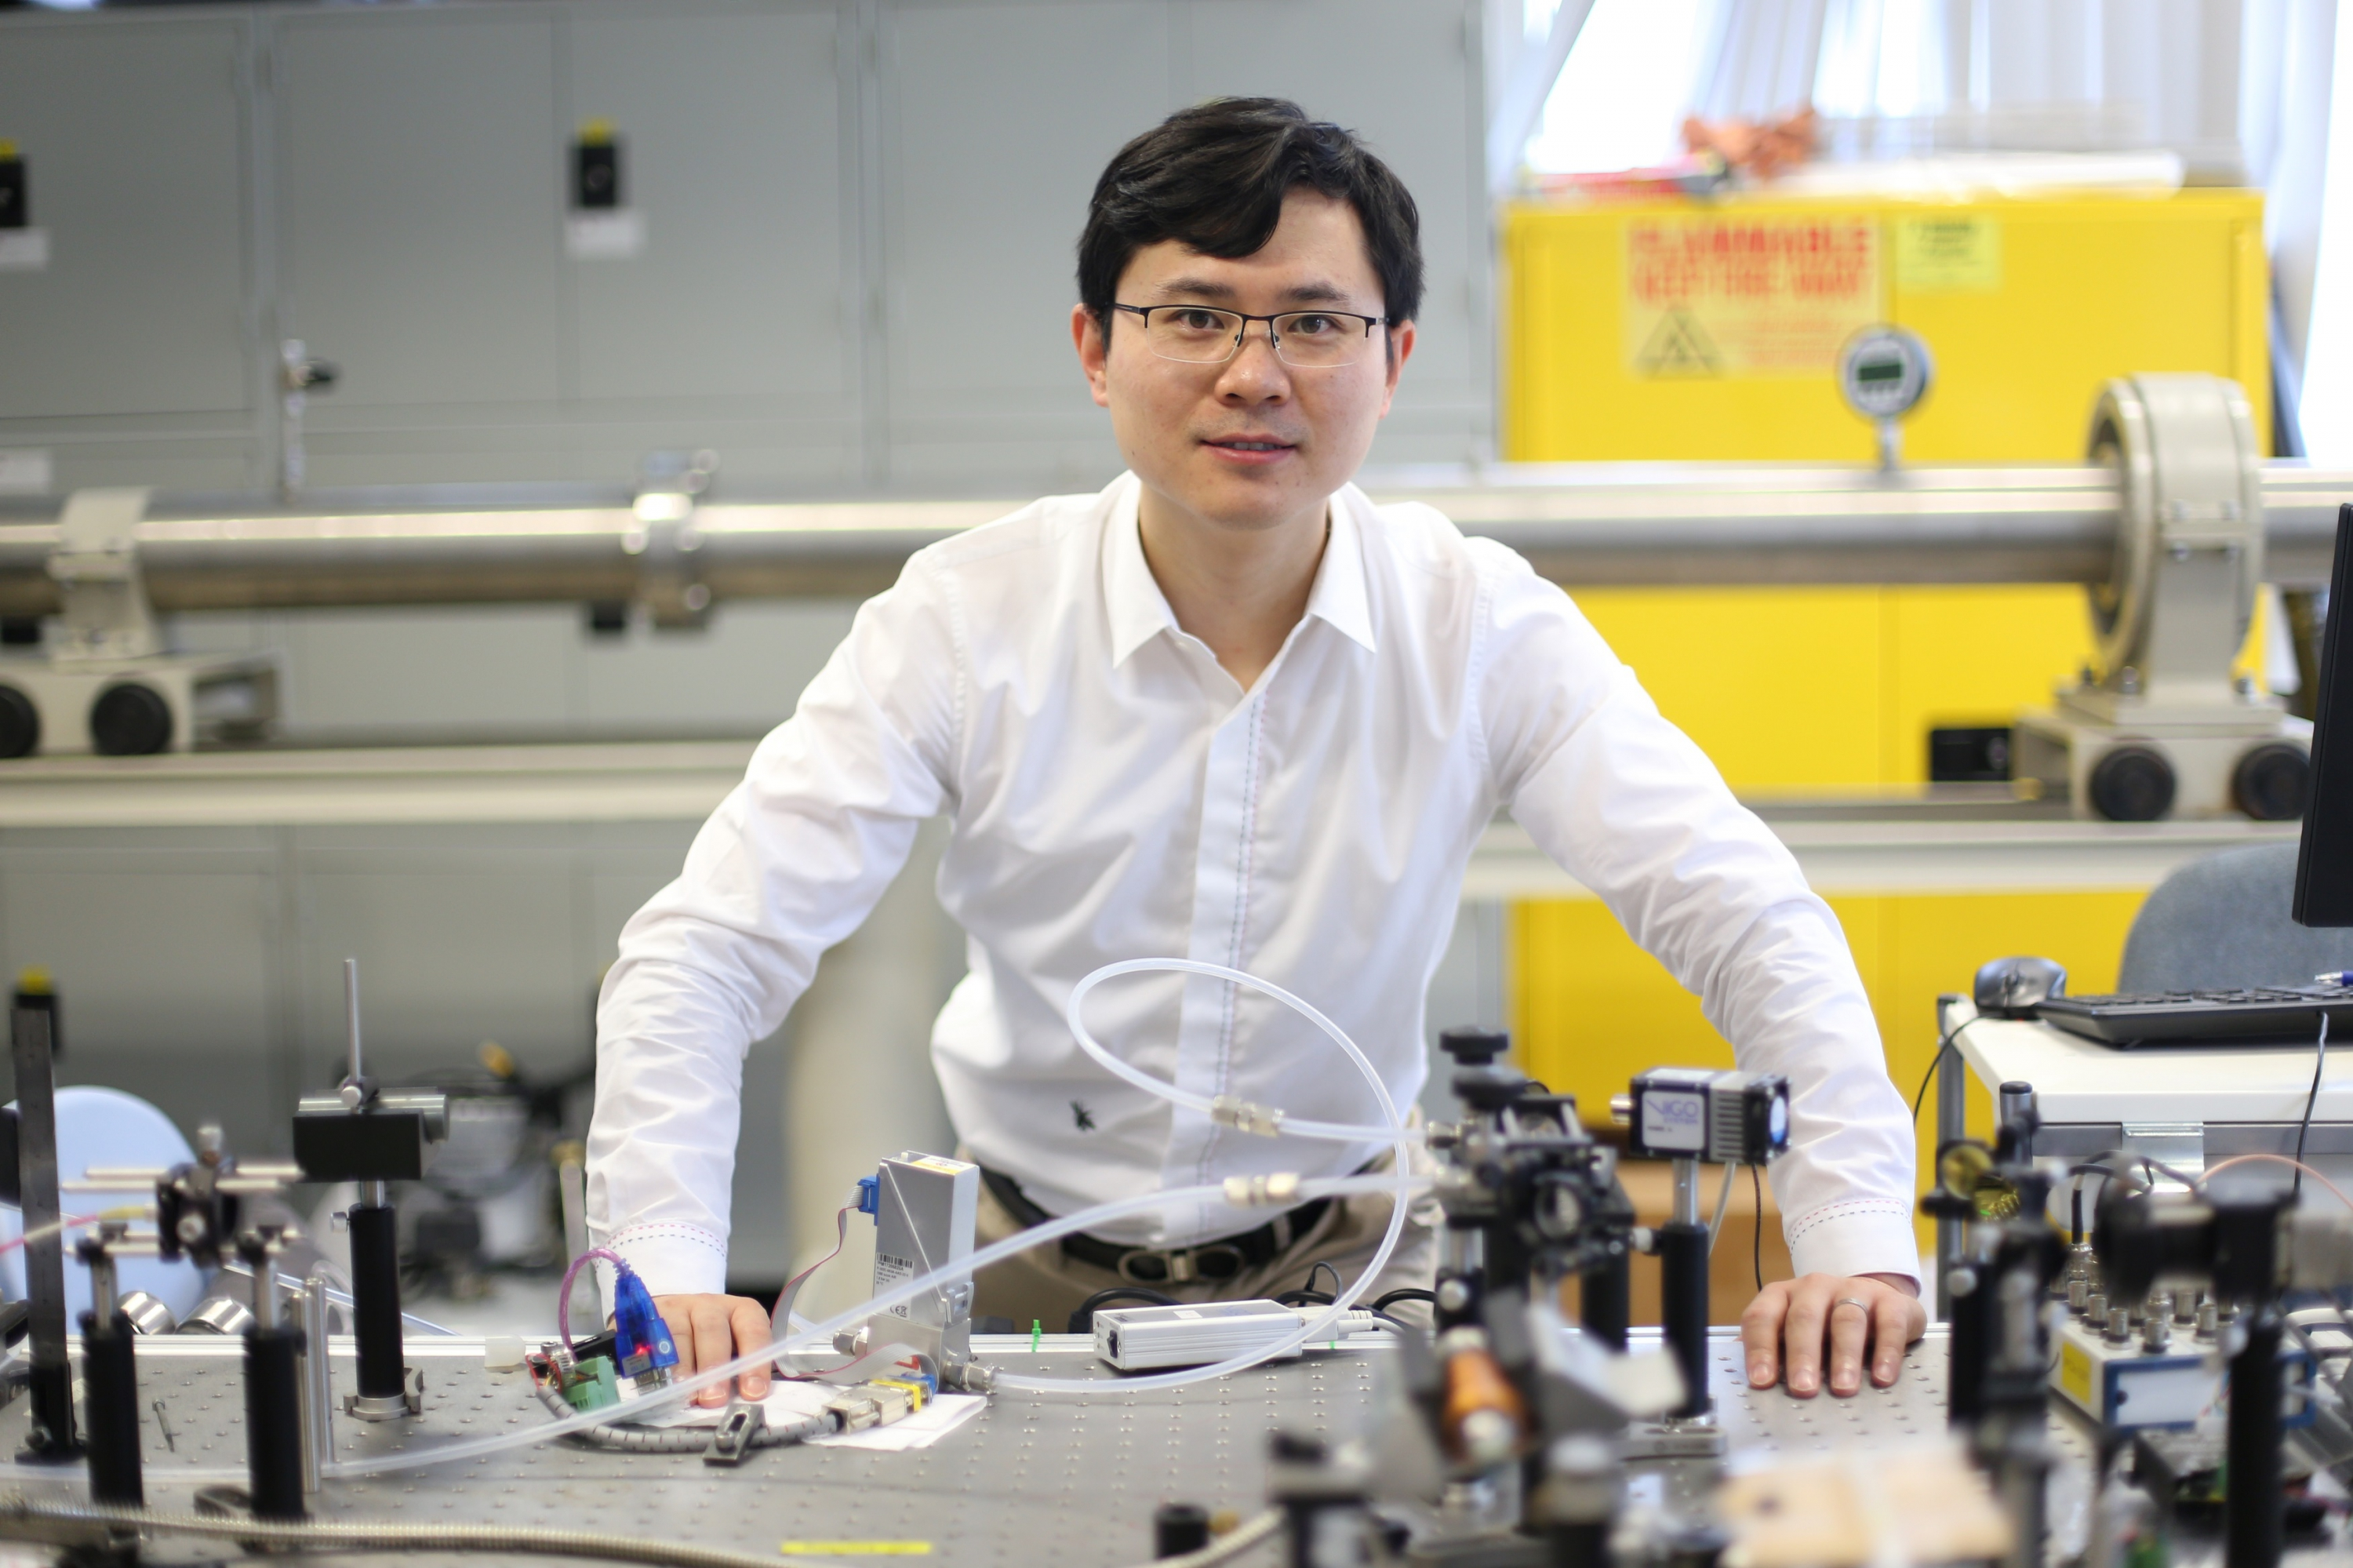 Prof. Wei Ren studies kinetics in combustion, atmosphere and interstellar chemistry. He also develops novel spectroscopic techniques for trace gas sensing.